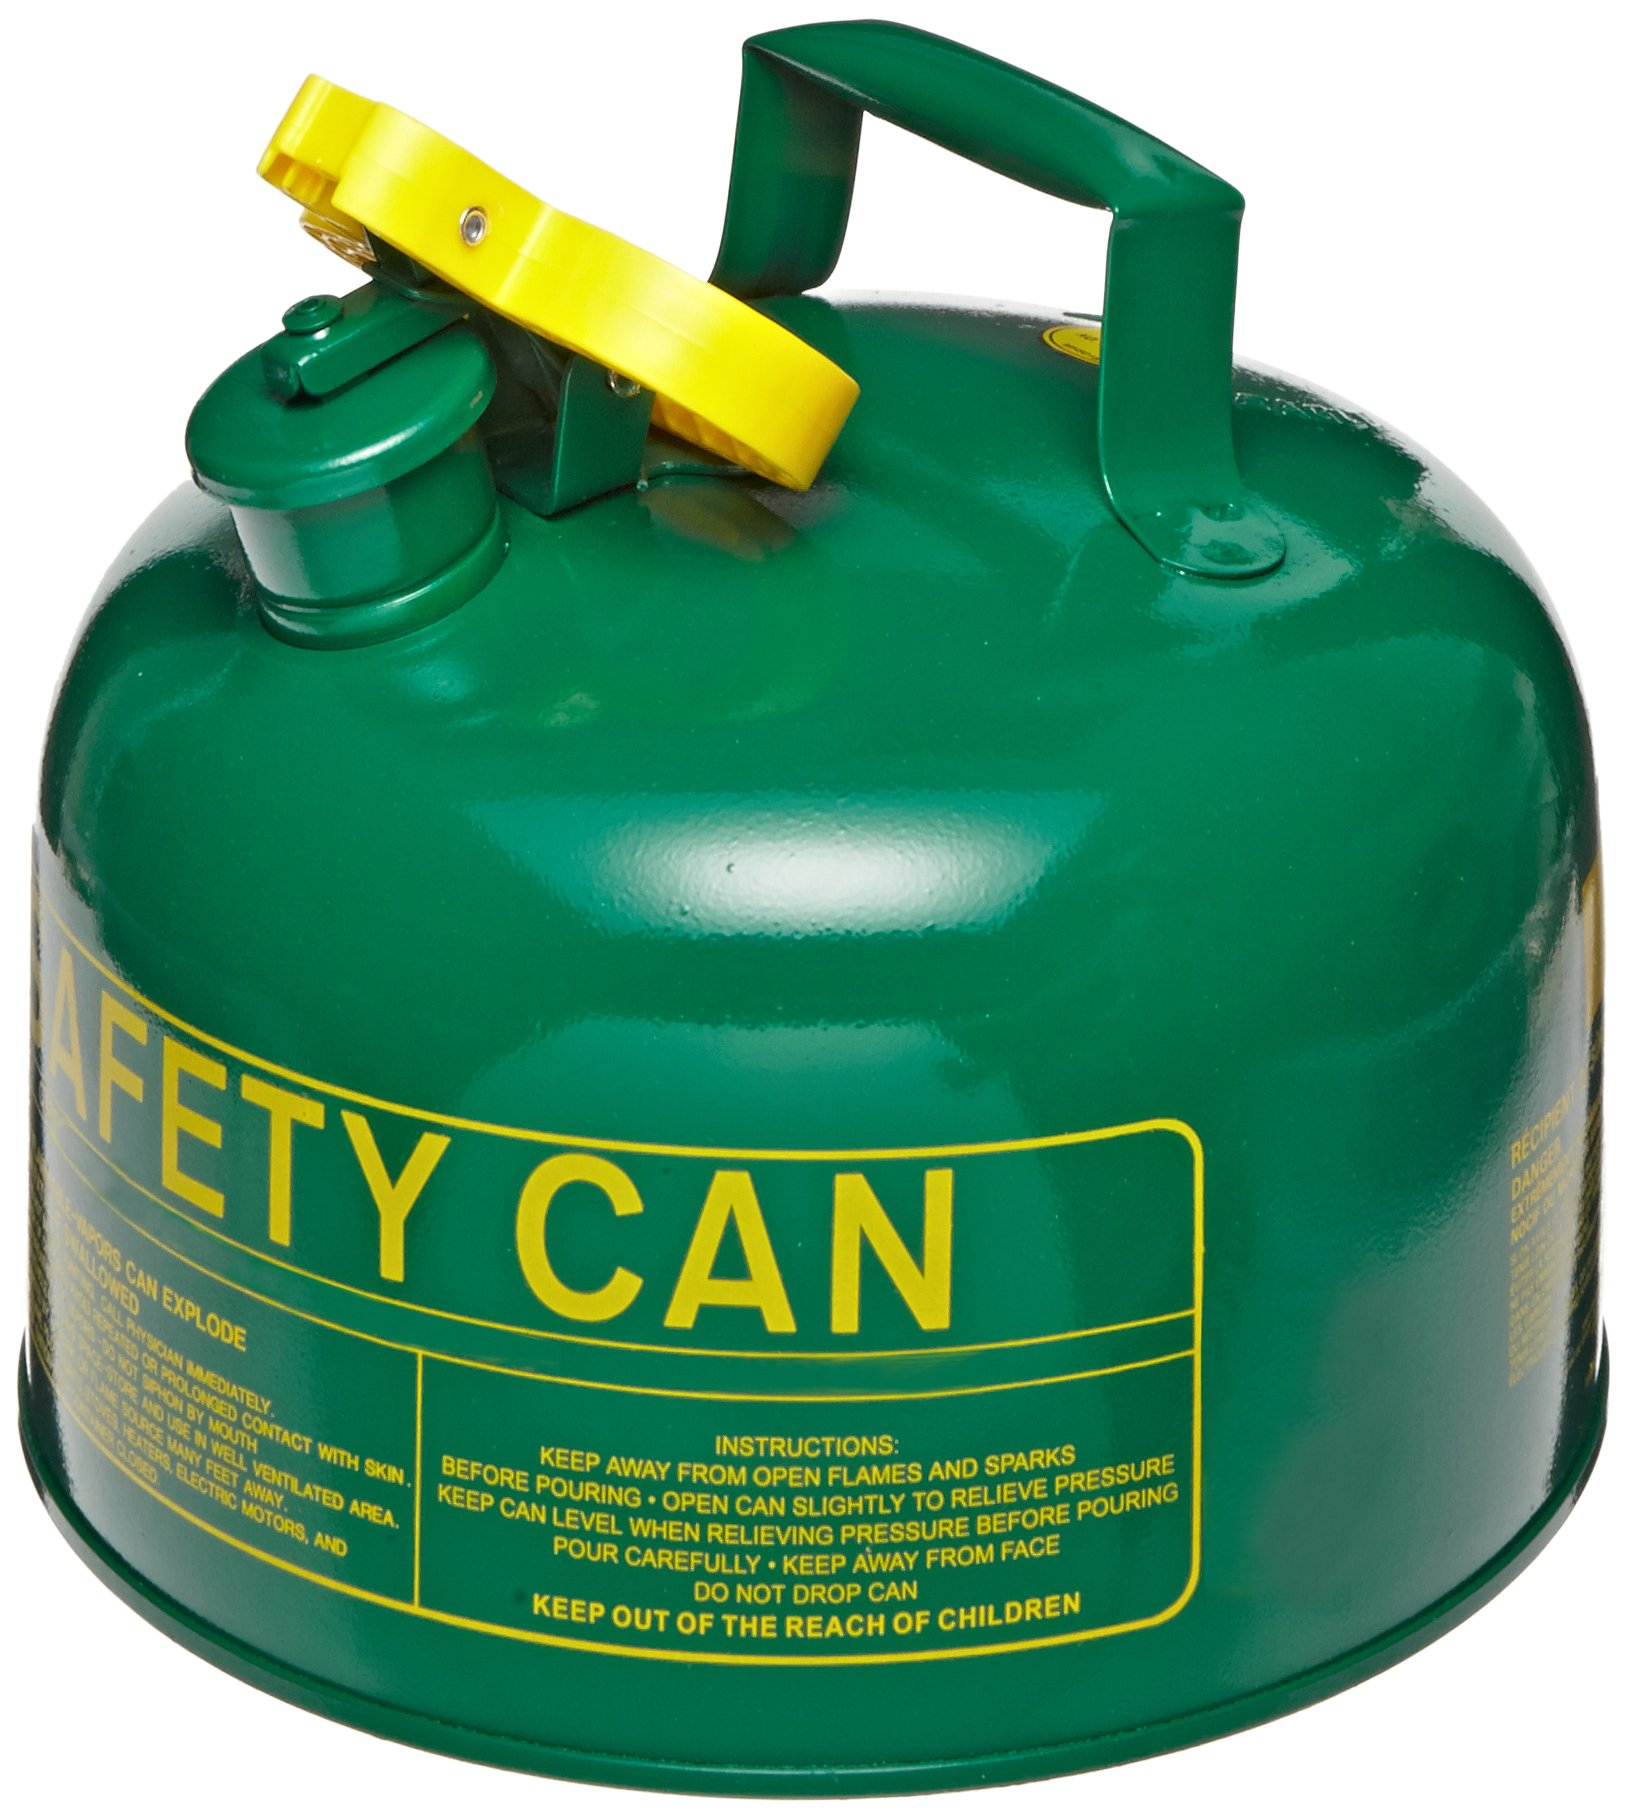 Eagle UI-50-SG Type I Metal Safety Can, Combustibles, 12-1/2'' Width x 13-1/2'' Depth, 5 Gallon Capacity, Green